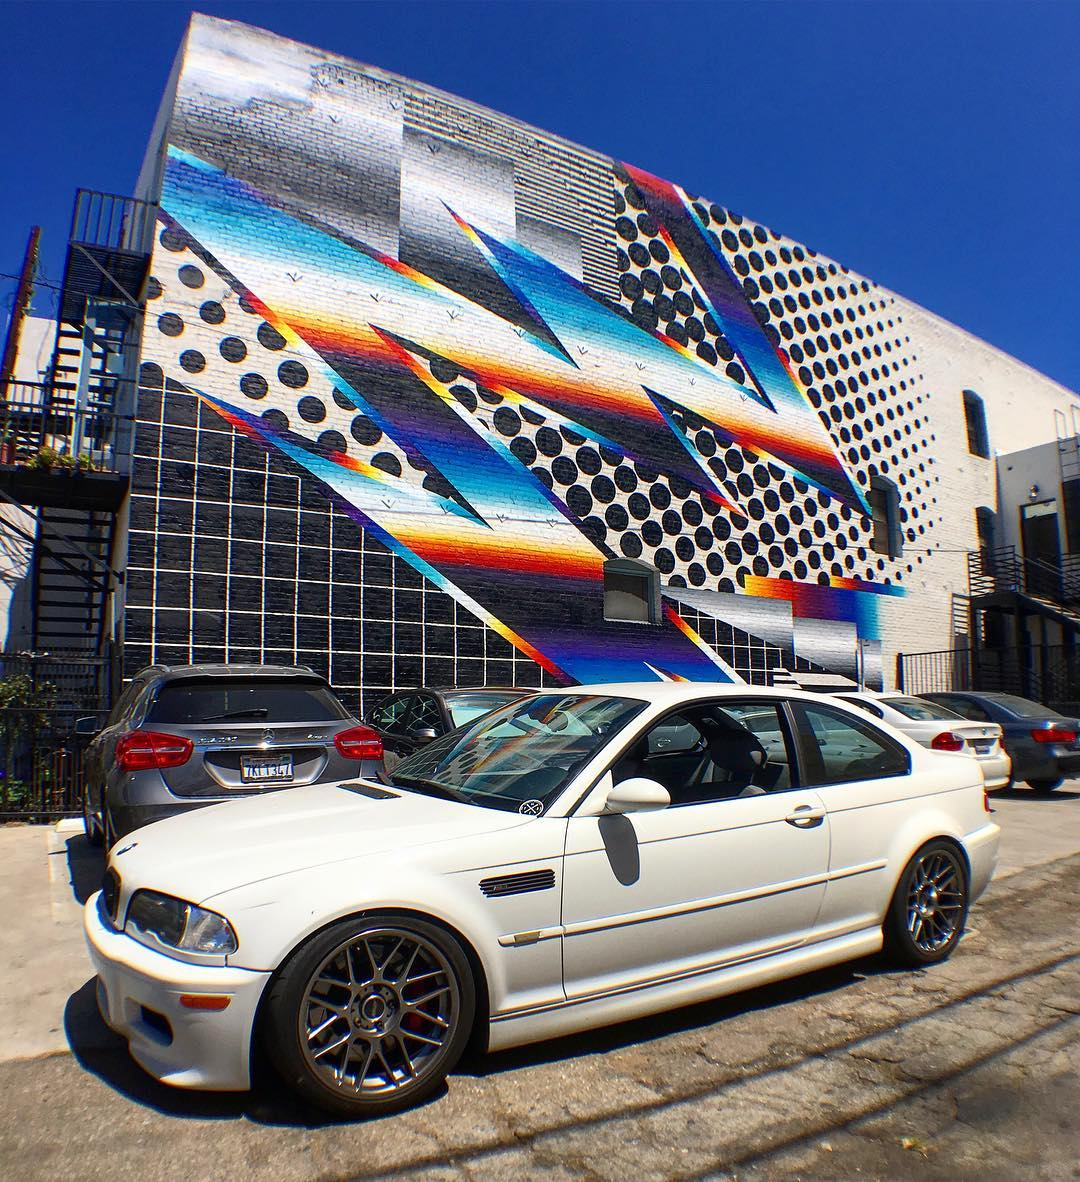 Our buddy @felipepantone left his mark on Down Town Long Beach, so took @vin_tra's M3 down to check it out! Tap the link in our bio for our entire line up inspired / designed by Pantone! #HooniganDOTcom #felipepantone #pantone #m3 #e46m3 #art #streetart